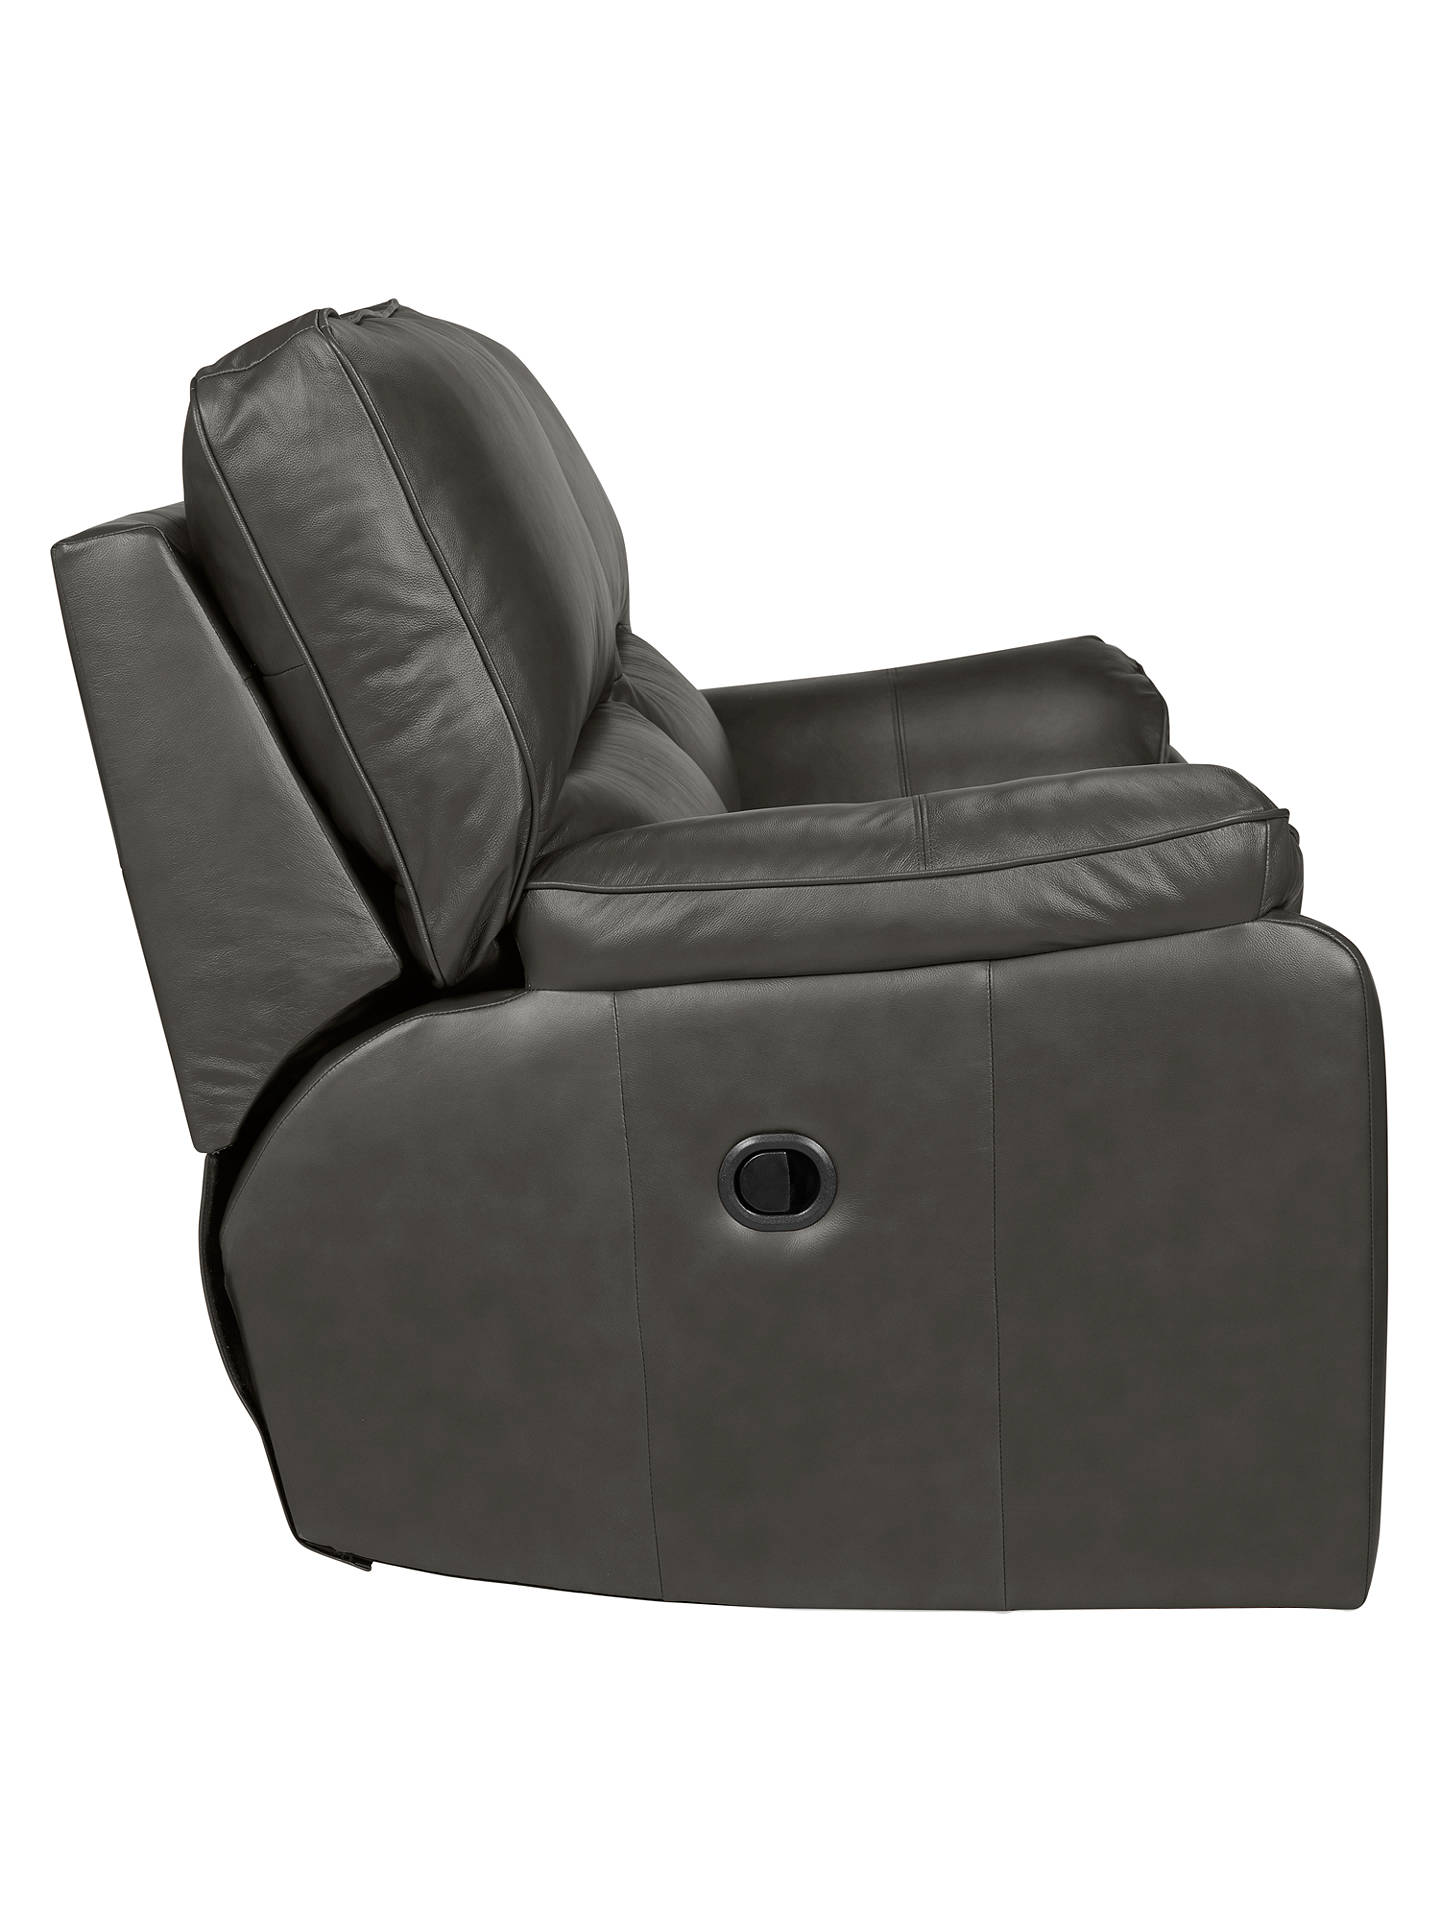 BuyJohn Lewis & Partners Carlisle Leather Manual Recliner Small 2 Seater Sofa, Winchester Anthracite Online at johnlewis.com